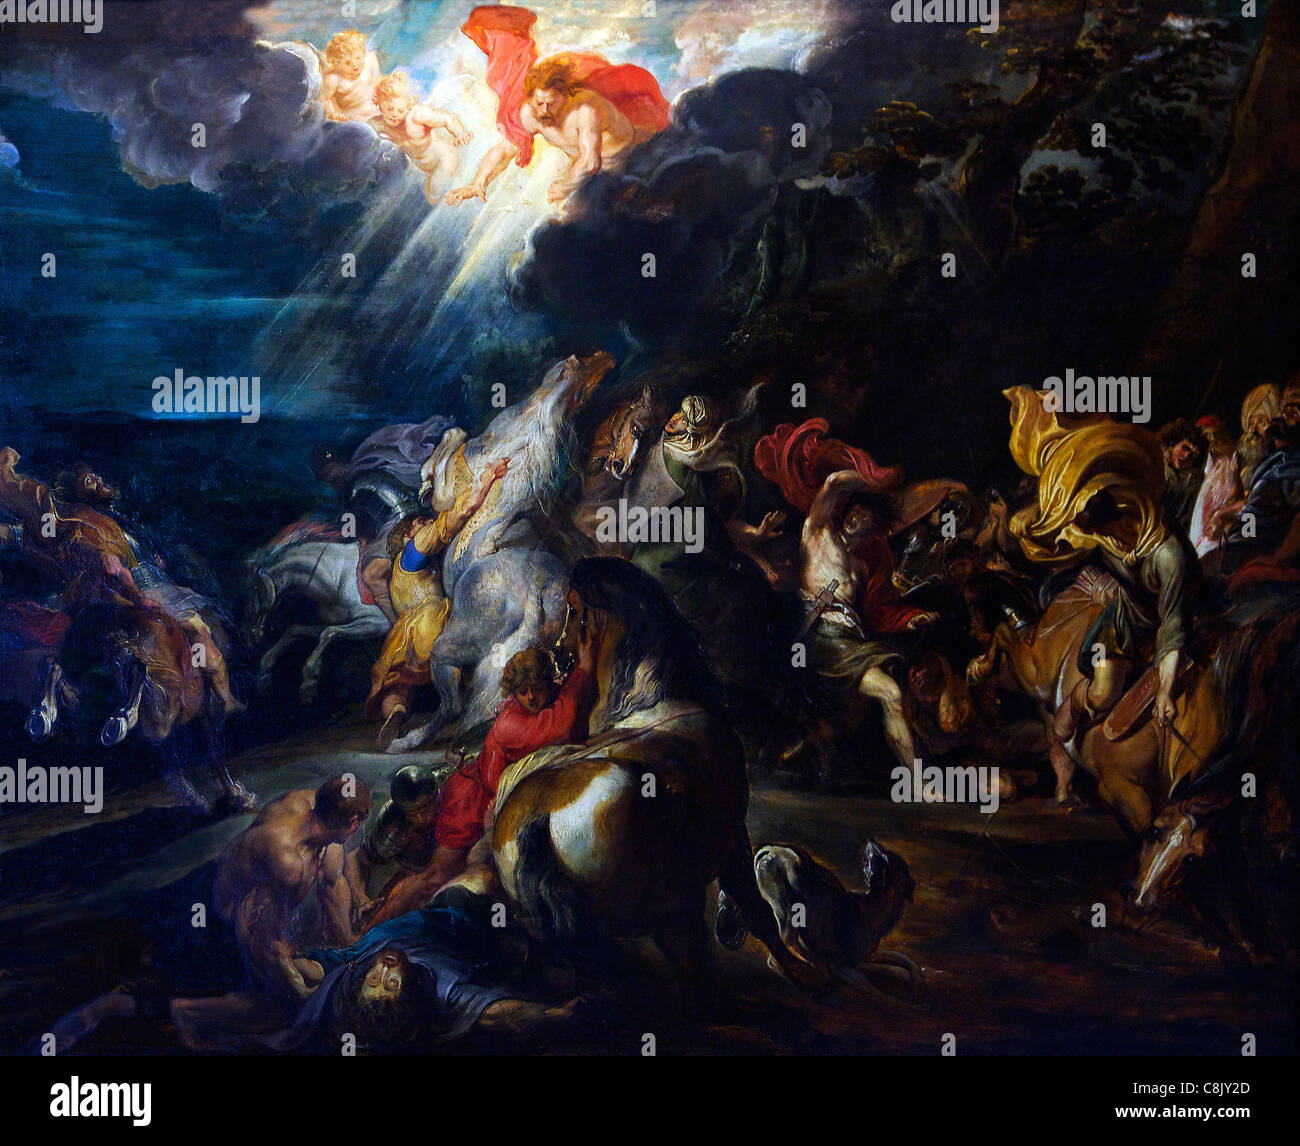 The Conversion of St Paul, by Peter Paul Rubens, 1610-12, Courtauld Galleries, Somerset House, London, England, - Stock Image